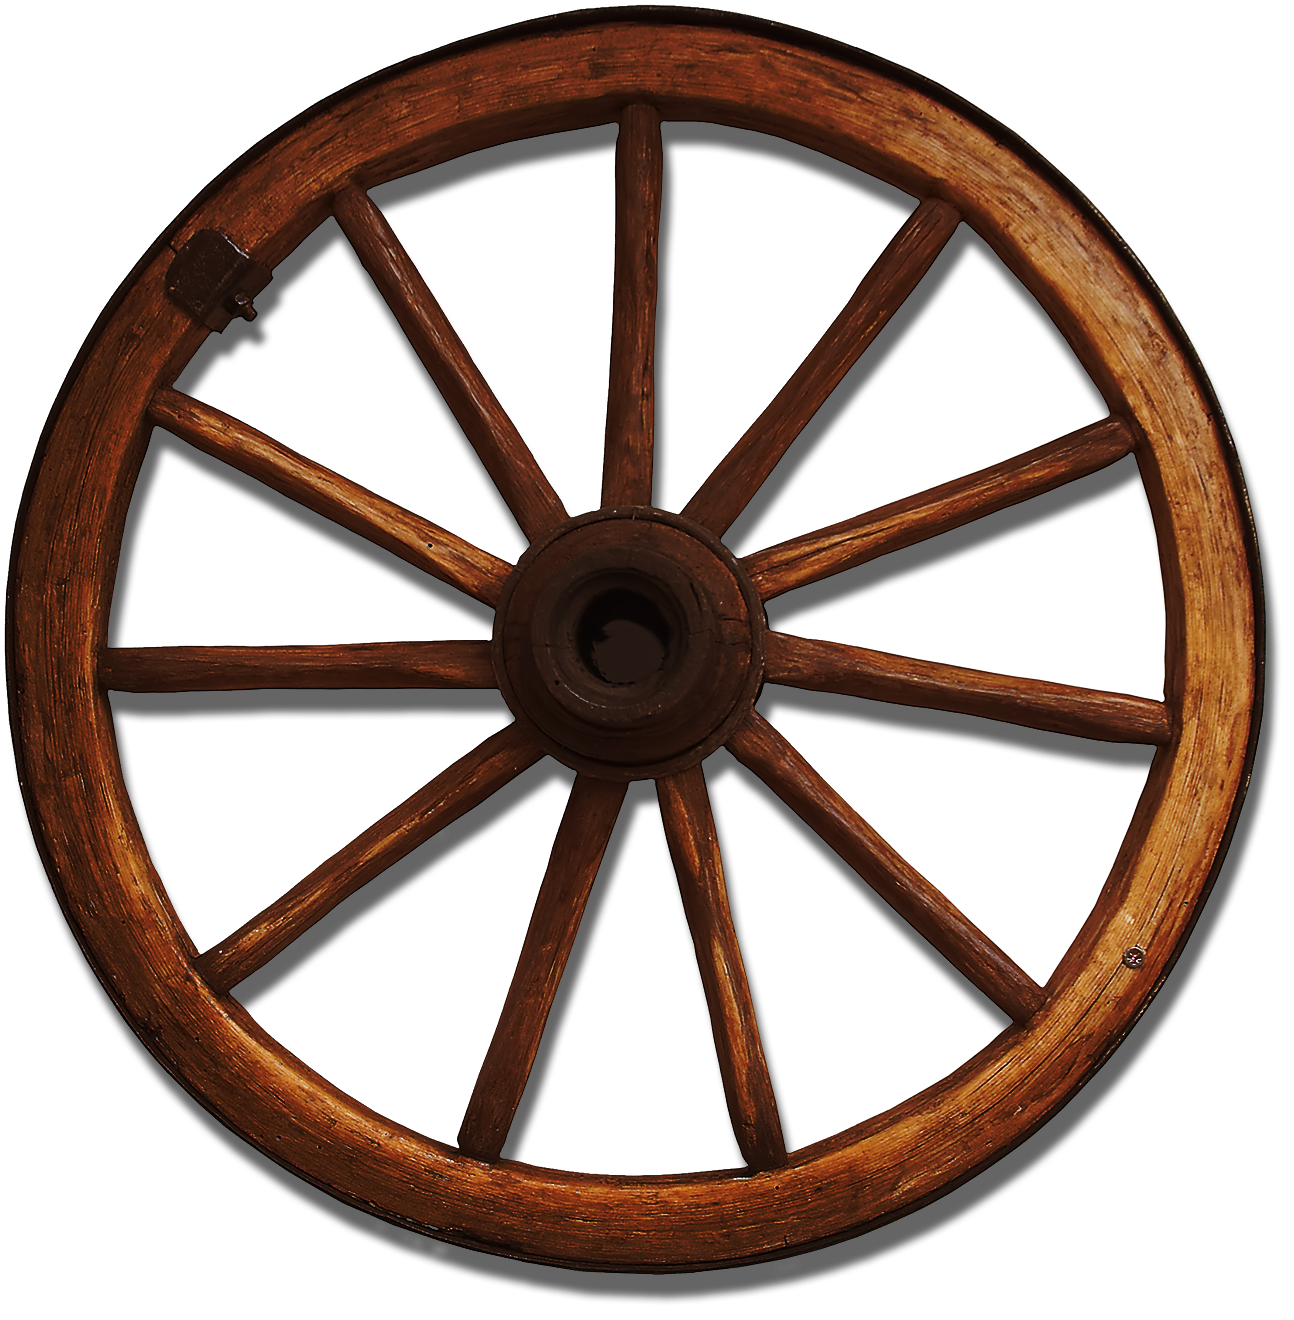 Chris home with wheels. Wheel clipart wooden wheel